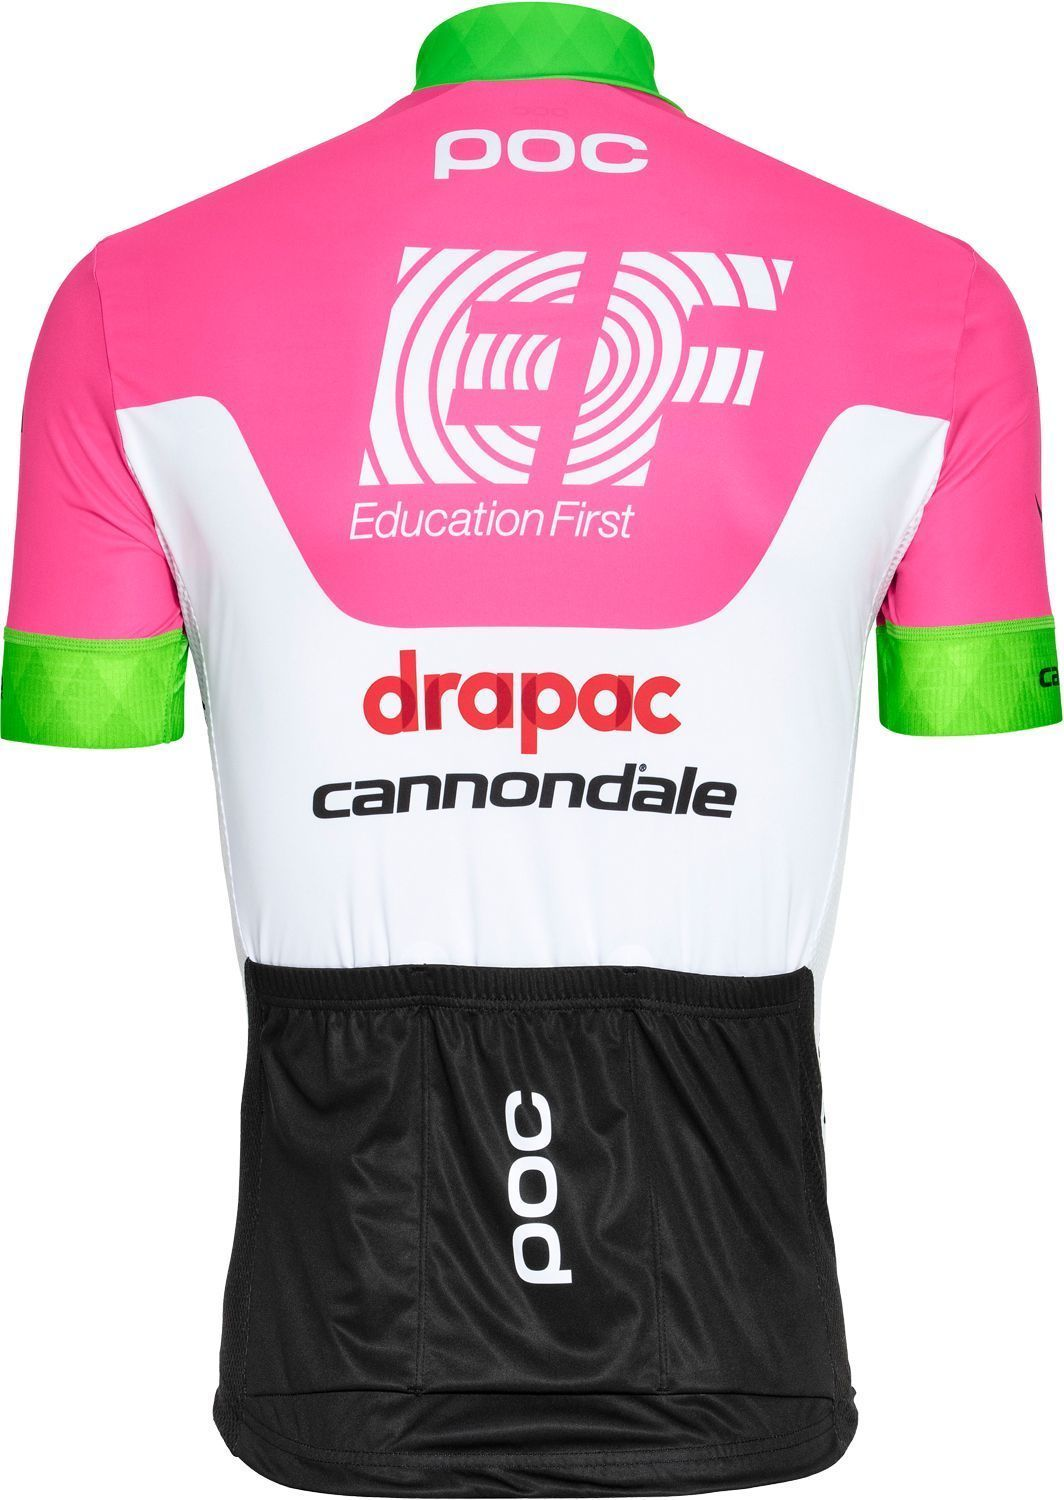 06ca72a4d EF Education First - Drapac 2018 cycling jersey (long zip) - POC  professional cycling. Next